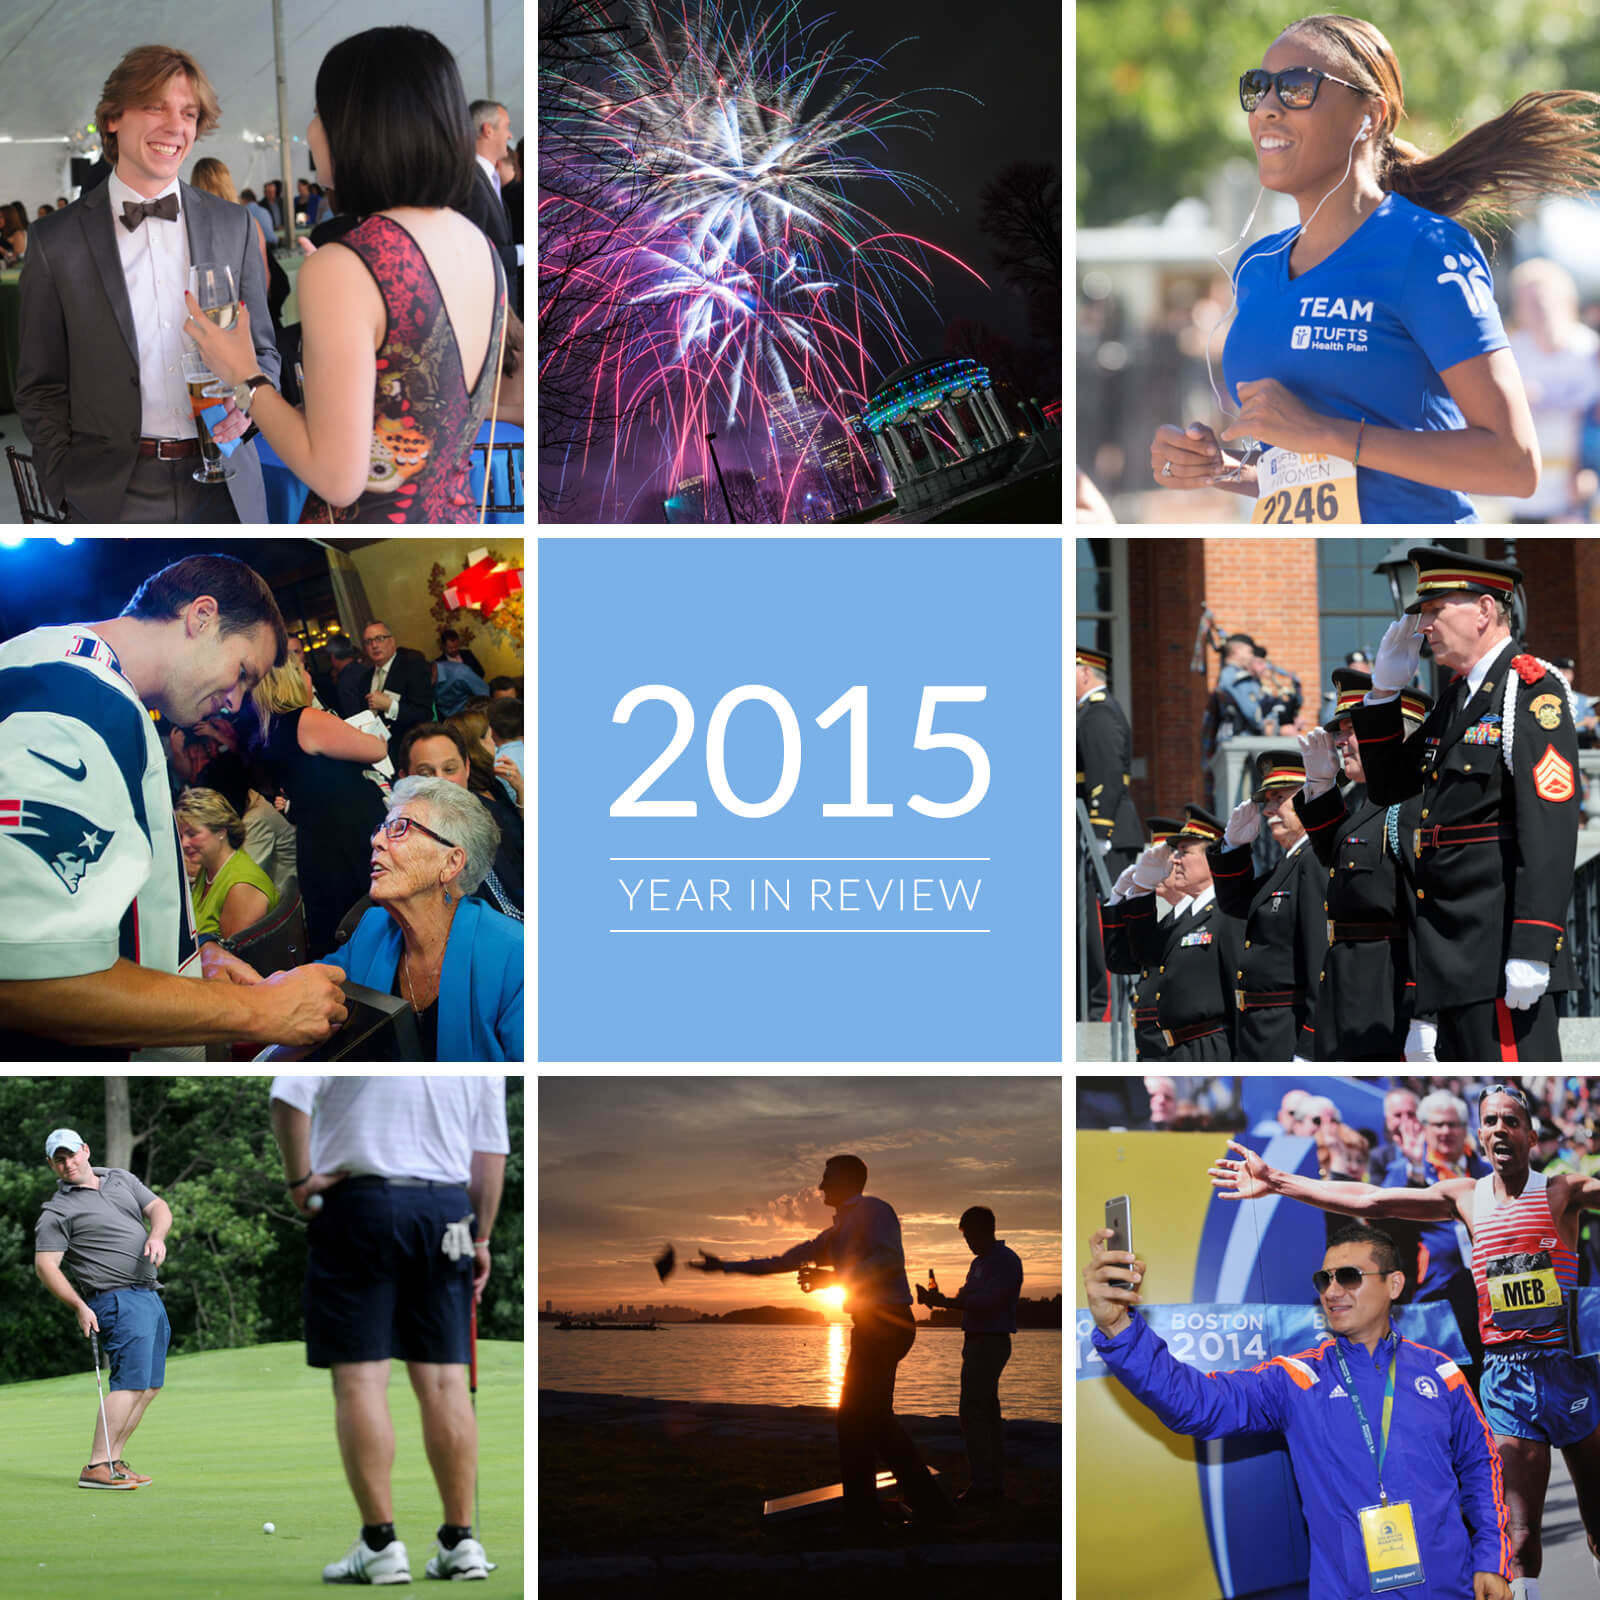 Conventures' 2014 Year in Review